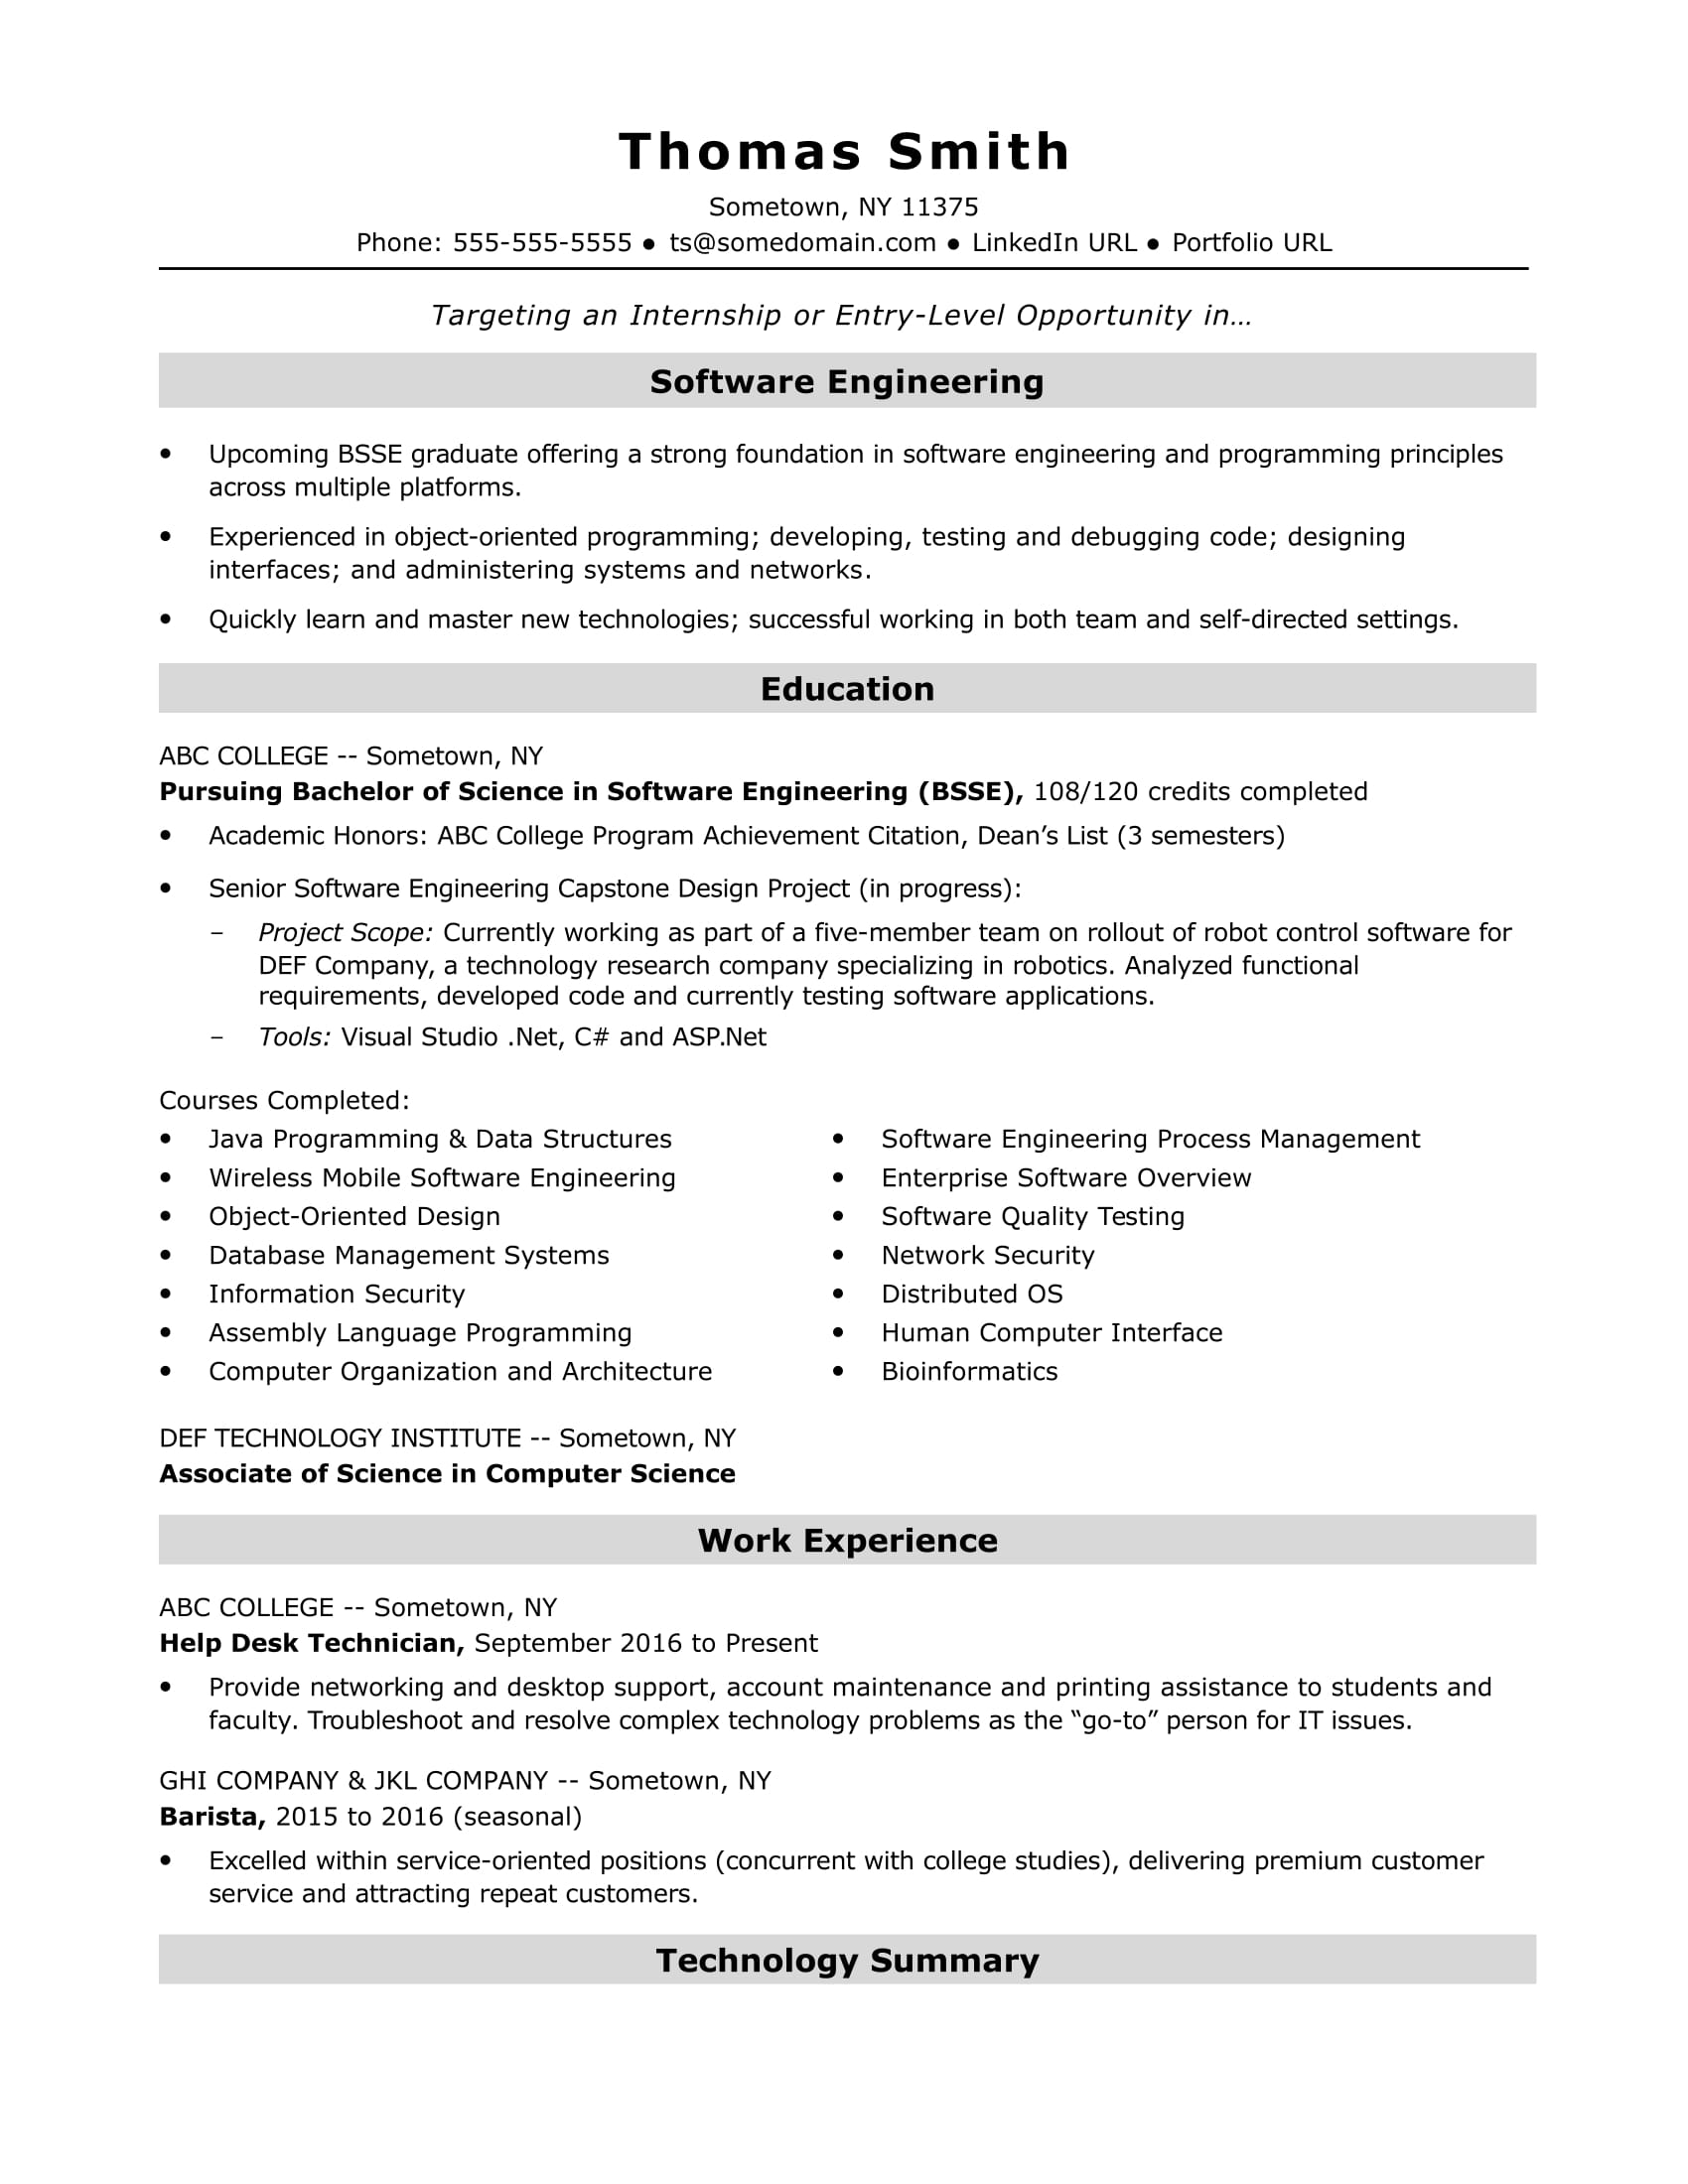 sample resume for an entry level software engineer - Resume Computer Science 2015